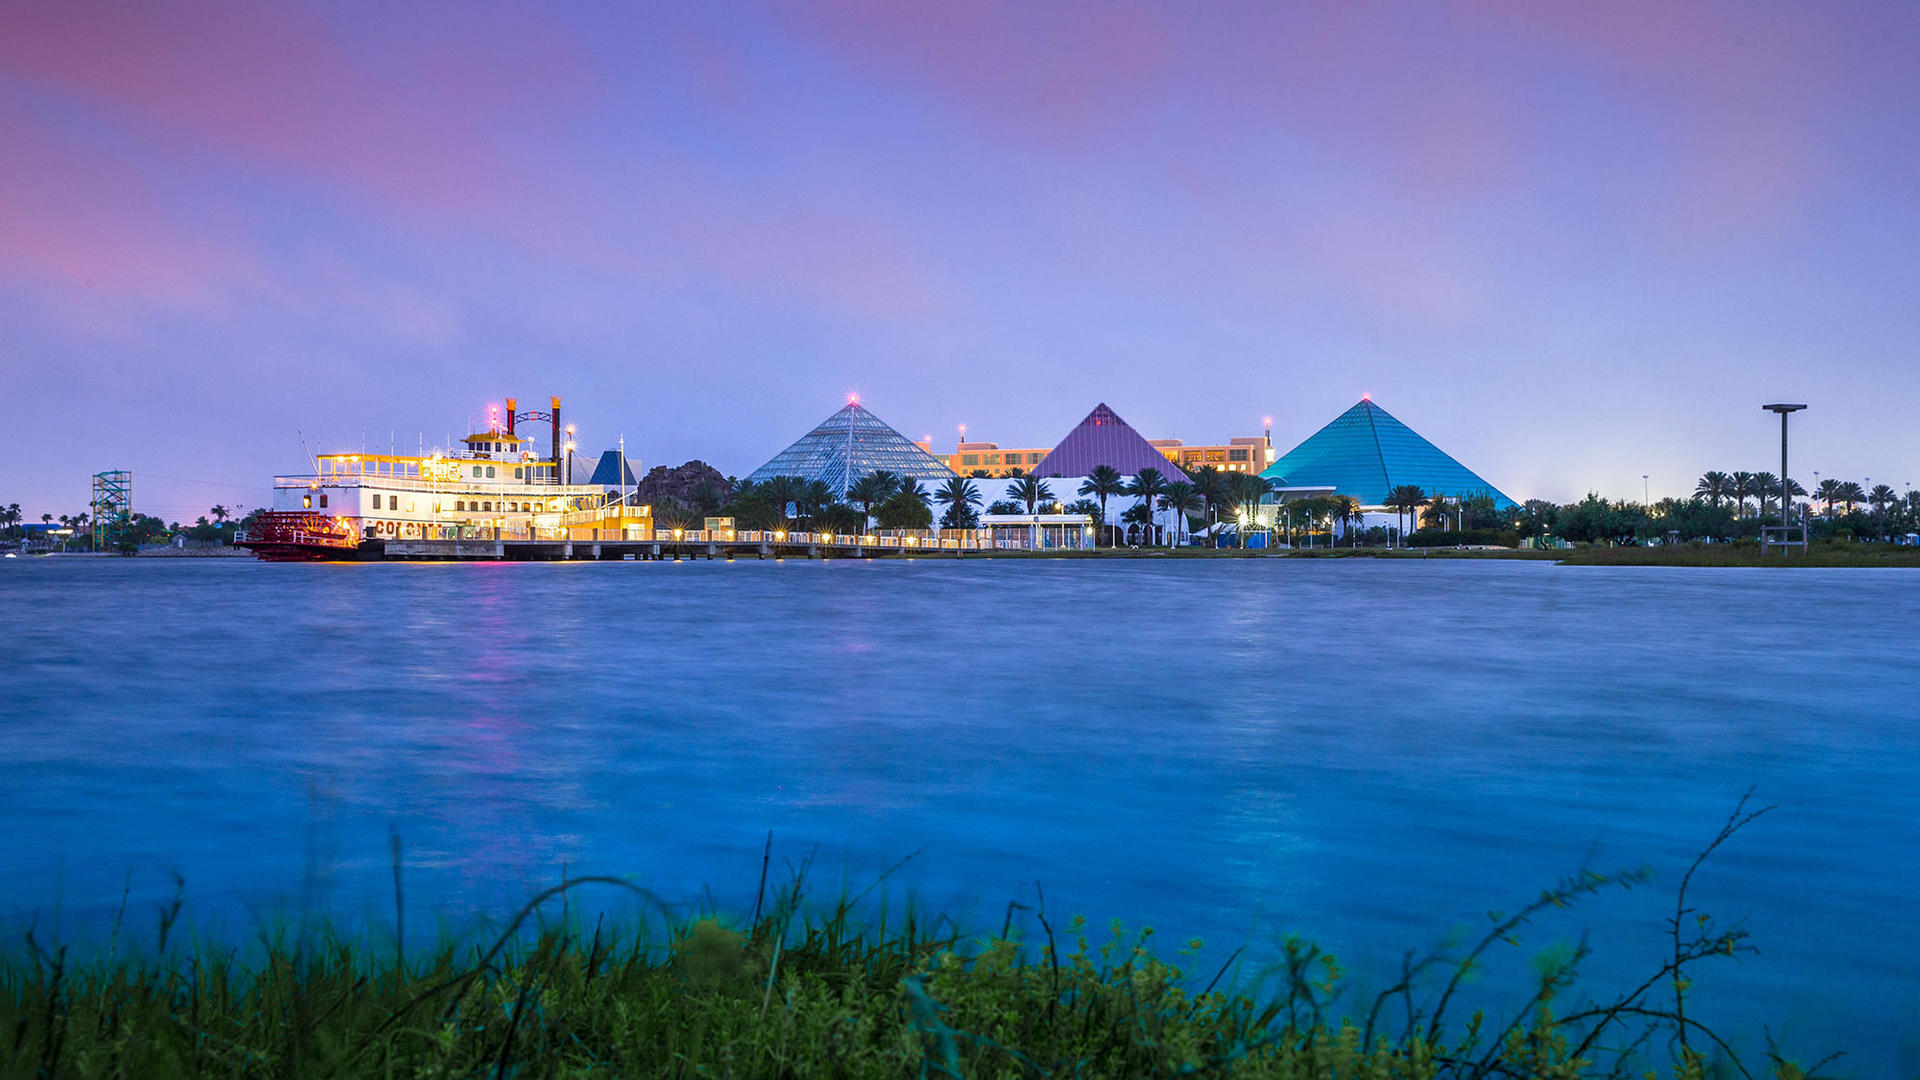 View of Pyramids From Across the Water